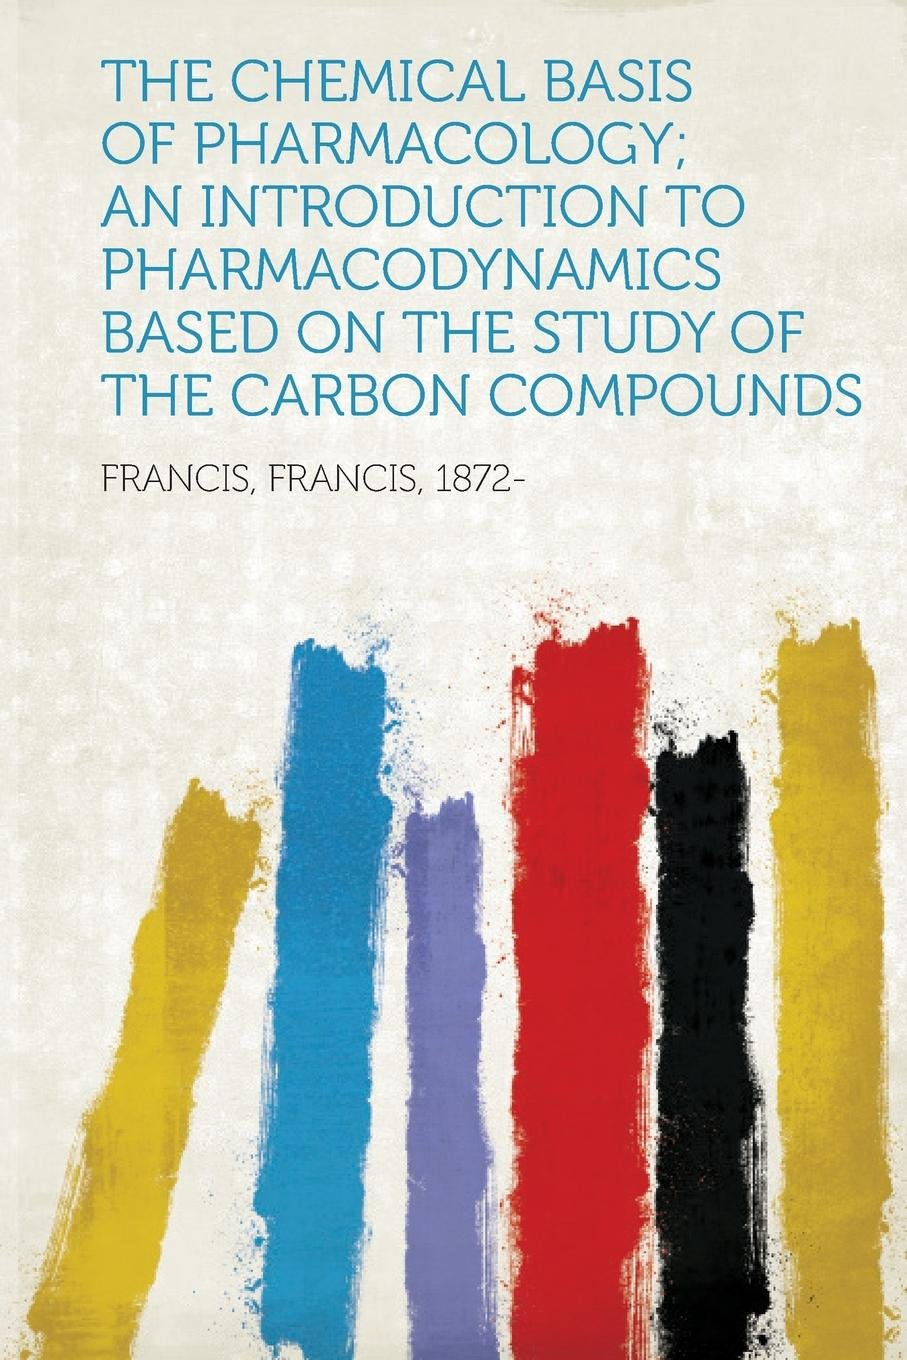 The Chemical Basis of Pharmacology; An Introduction to Pharmacodynamics Based on the Study of the Carbon Compounds